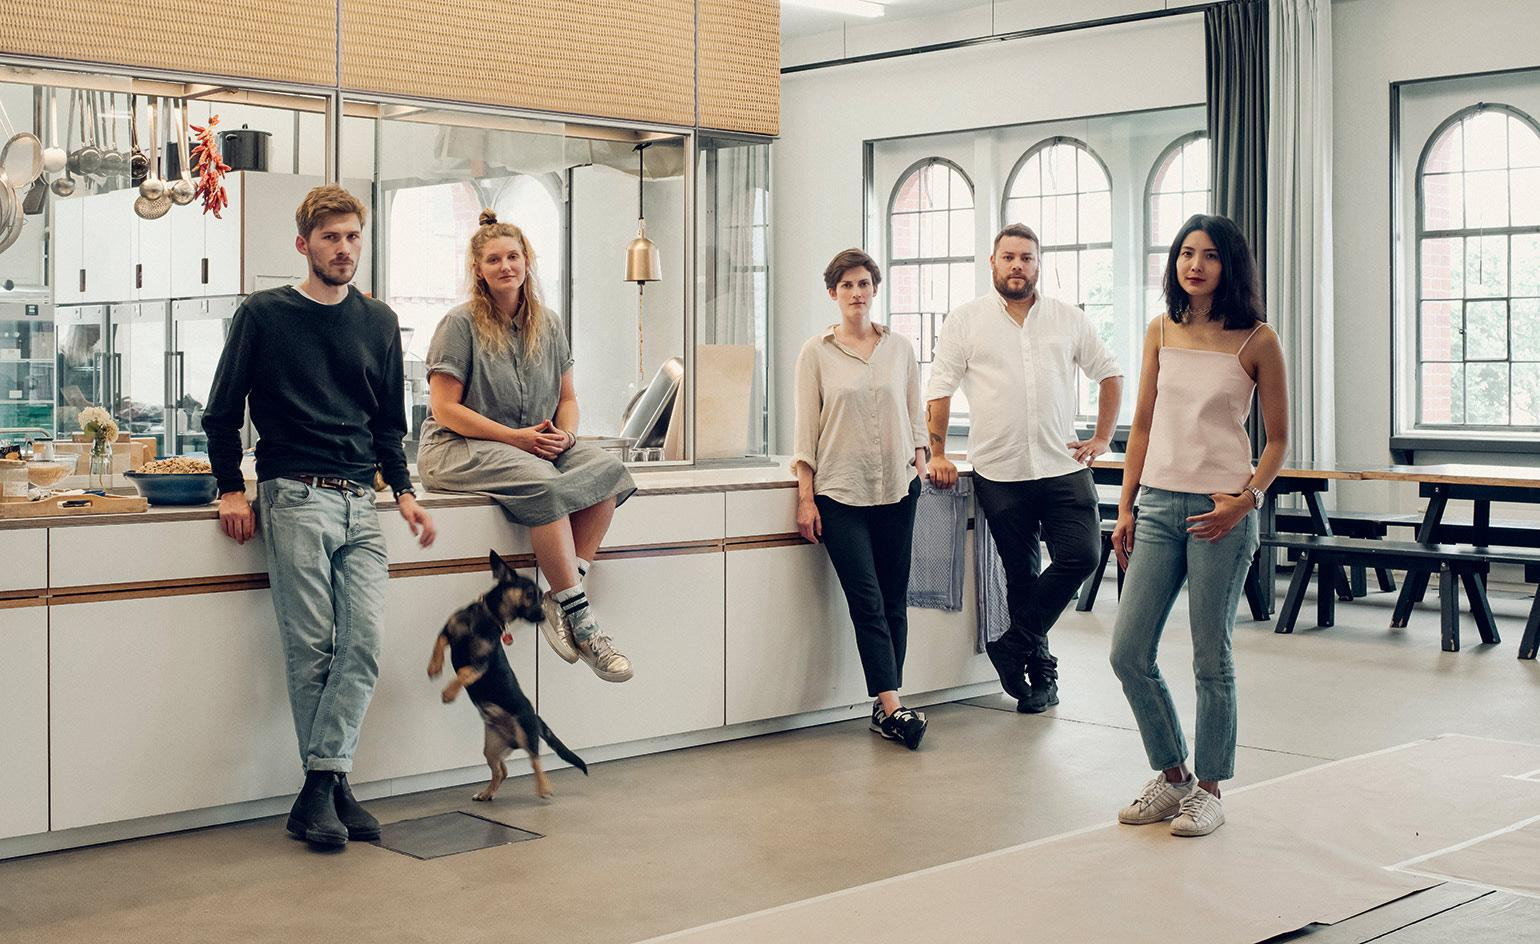 Counter moves: meet the talented young chefs beefing up Berlin's culinary scene